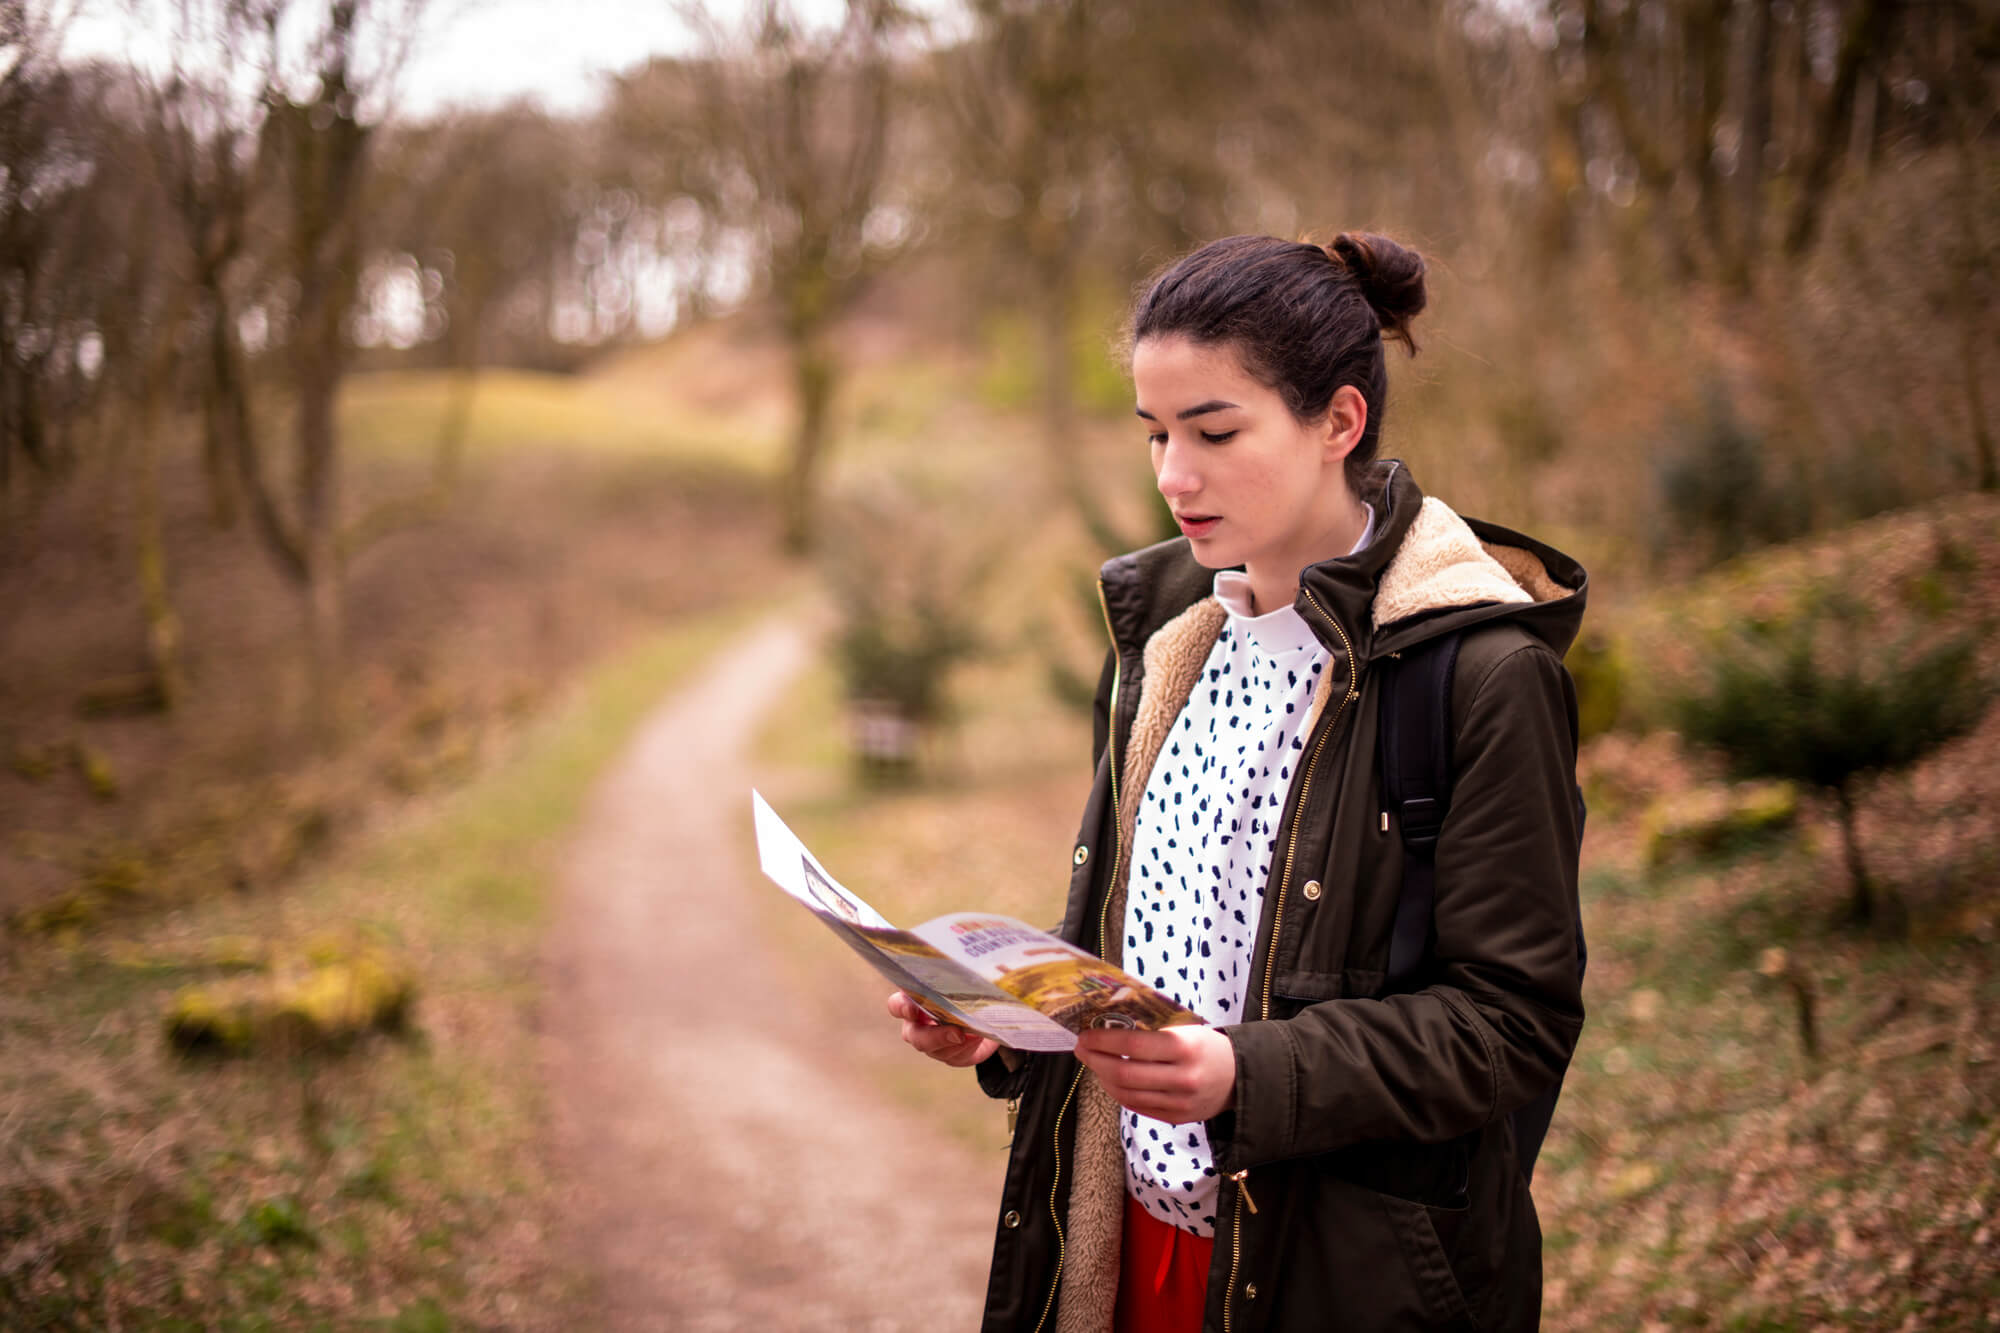 A University of Derby student looks at a tour guide map in the trails of the Peak District.  Wearing a fur lined hooded coat, bright red trousers and black and white jumper she looks relaxed and at peace.